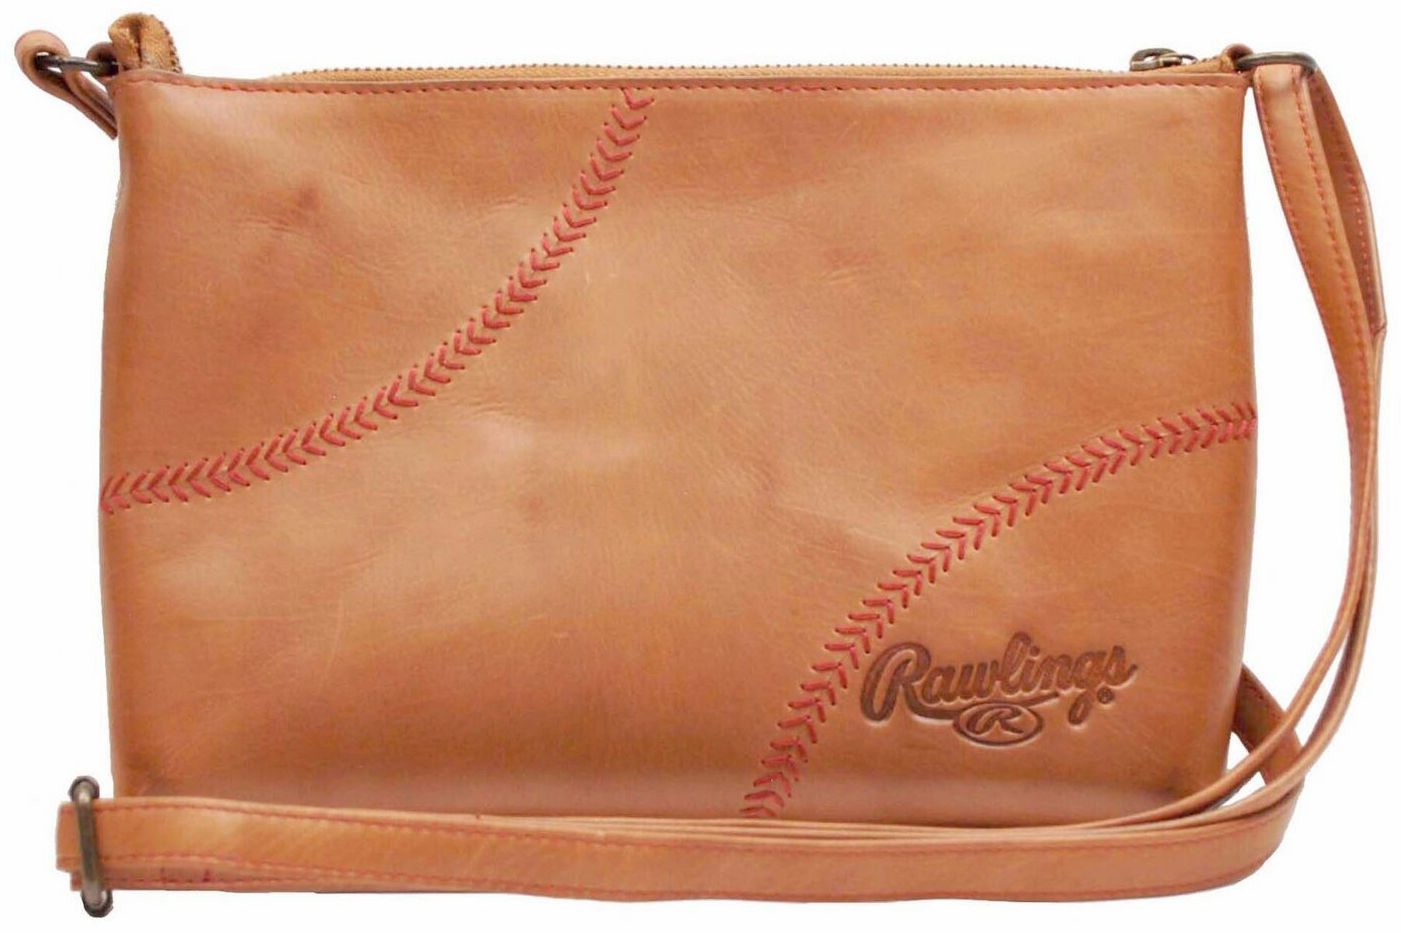 Vintage Tan Leather Baseball Stitch Cross Body Minibag Purse by Rawlings<br>ONLY 2 LEFT!